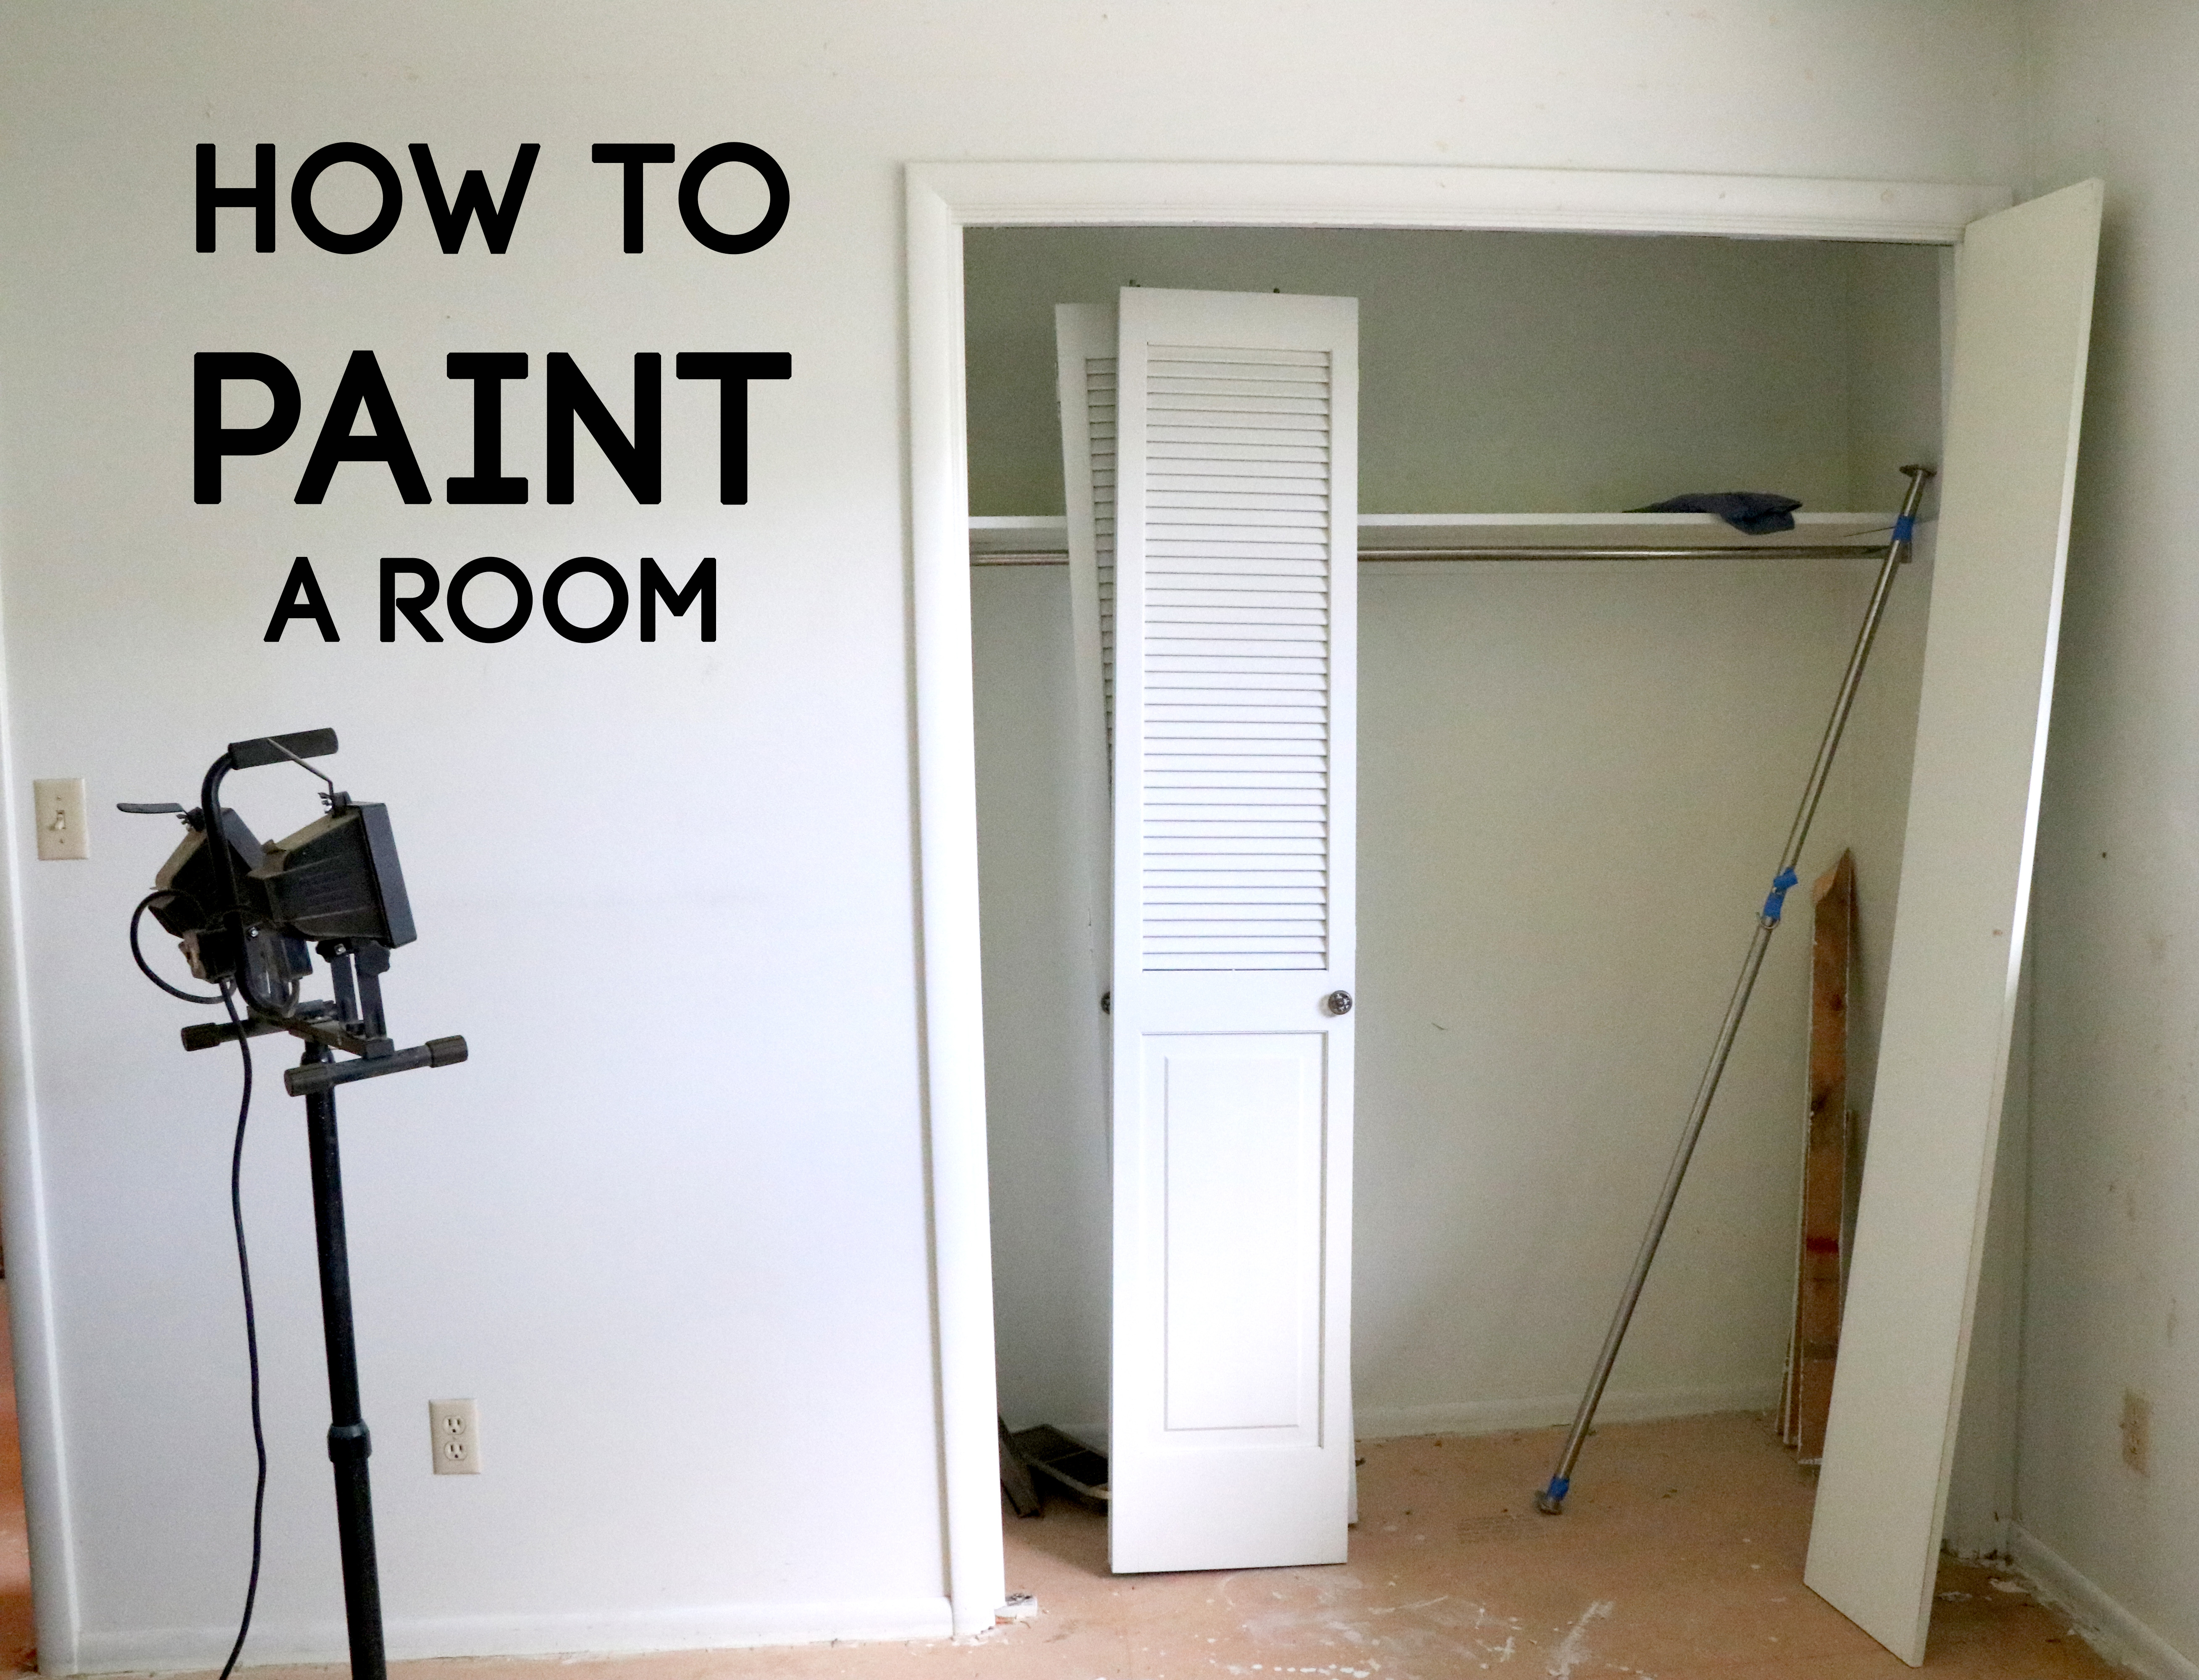 Everything you need to know about how to paint a room starting with the basics.